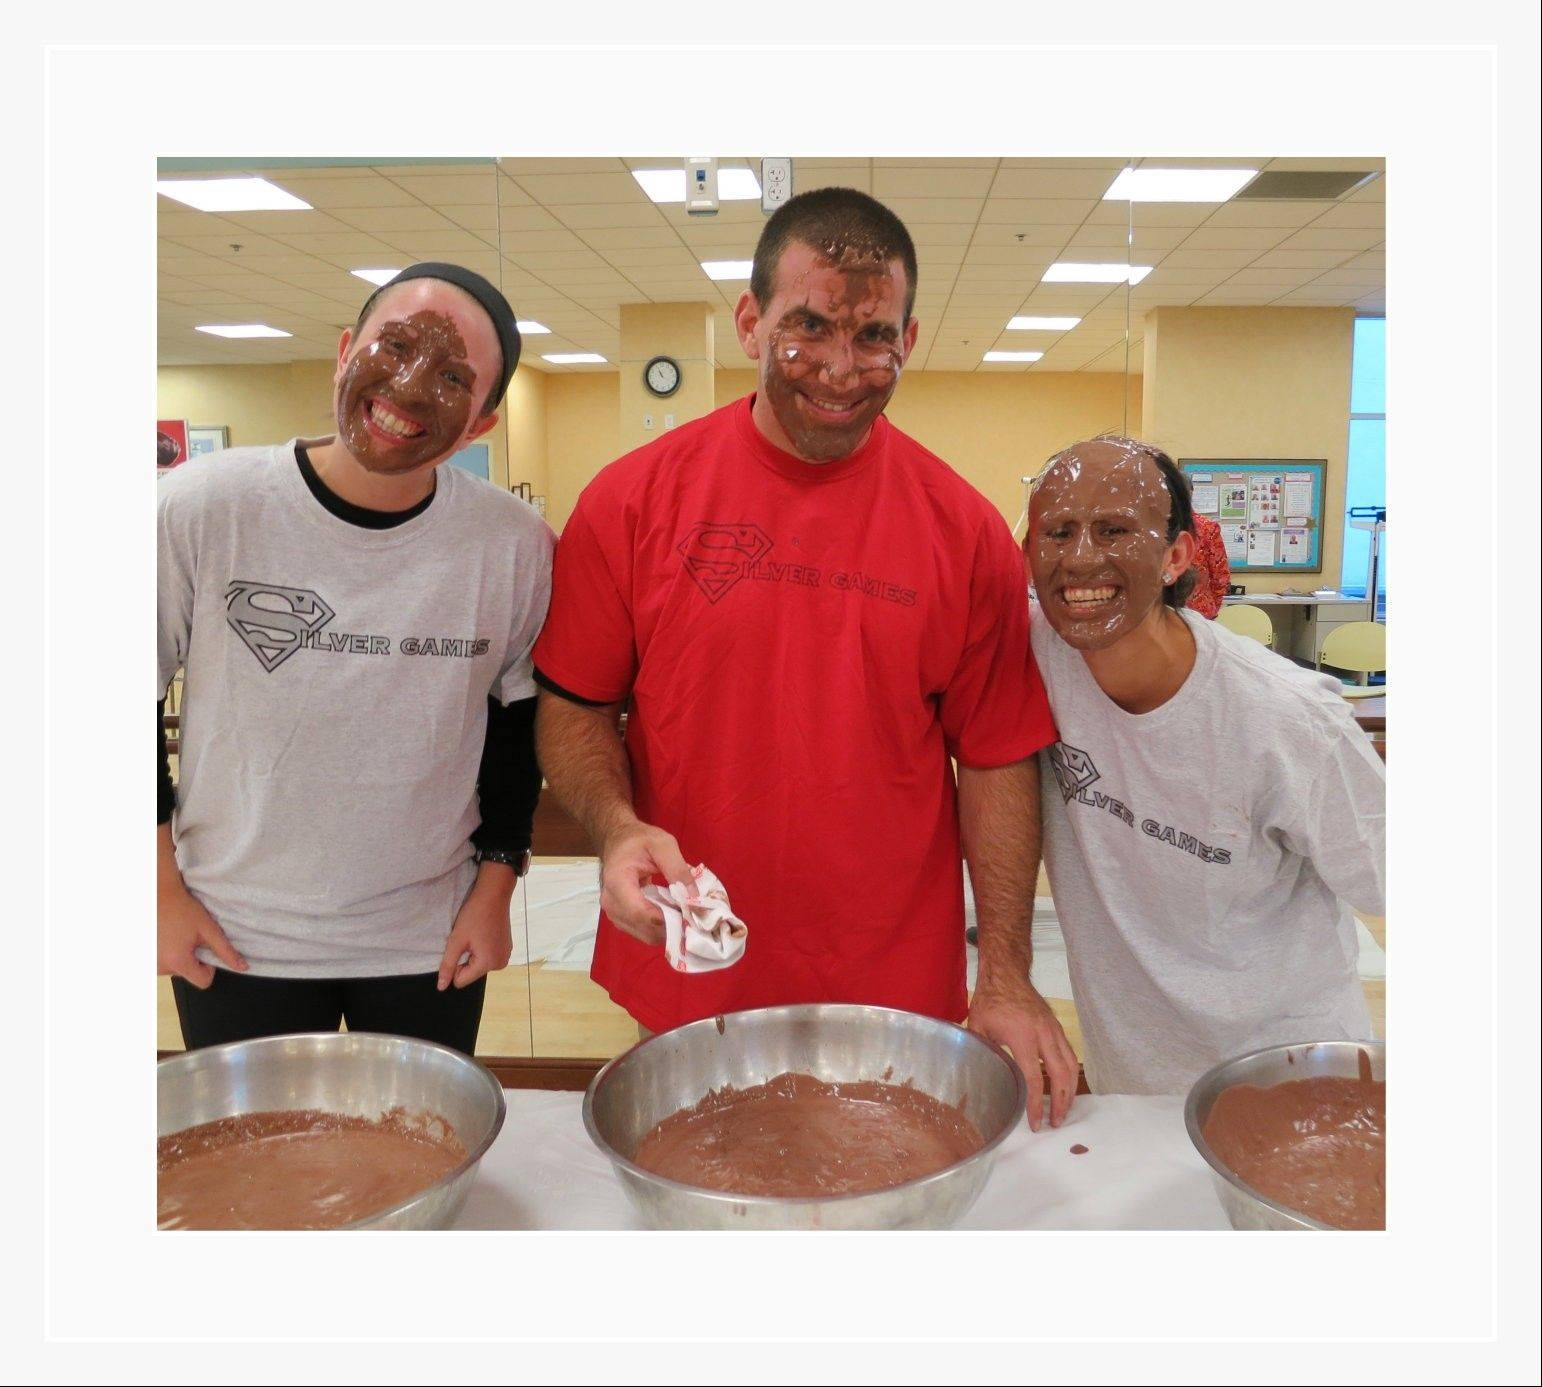 After residents at Friendship Village successfully completed a walking challenge, fitness physiologists Jenna Belt, Jessica Enriquez and AJ Alfrey dunked their heads into bowls of chocolate pudding to fulfill a promise made to the seniors.